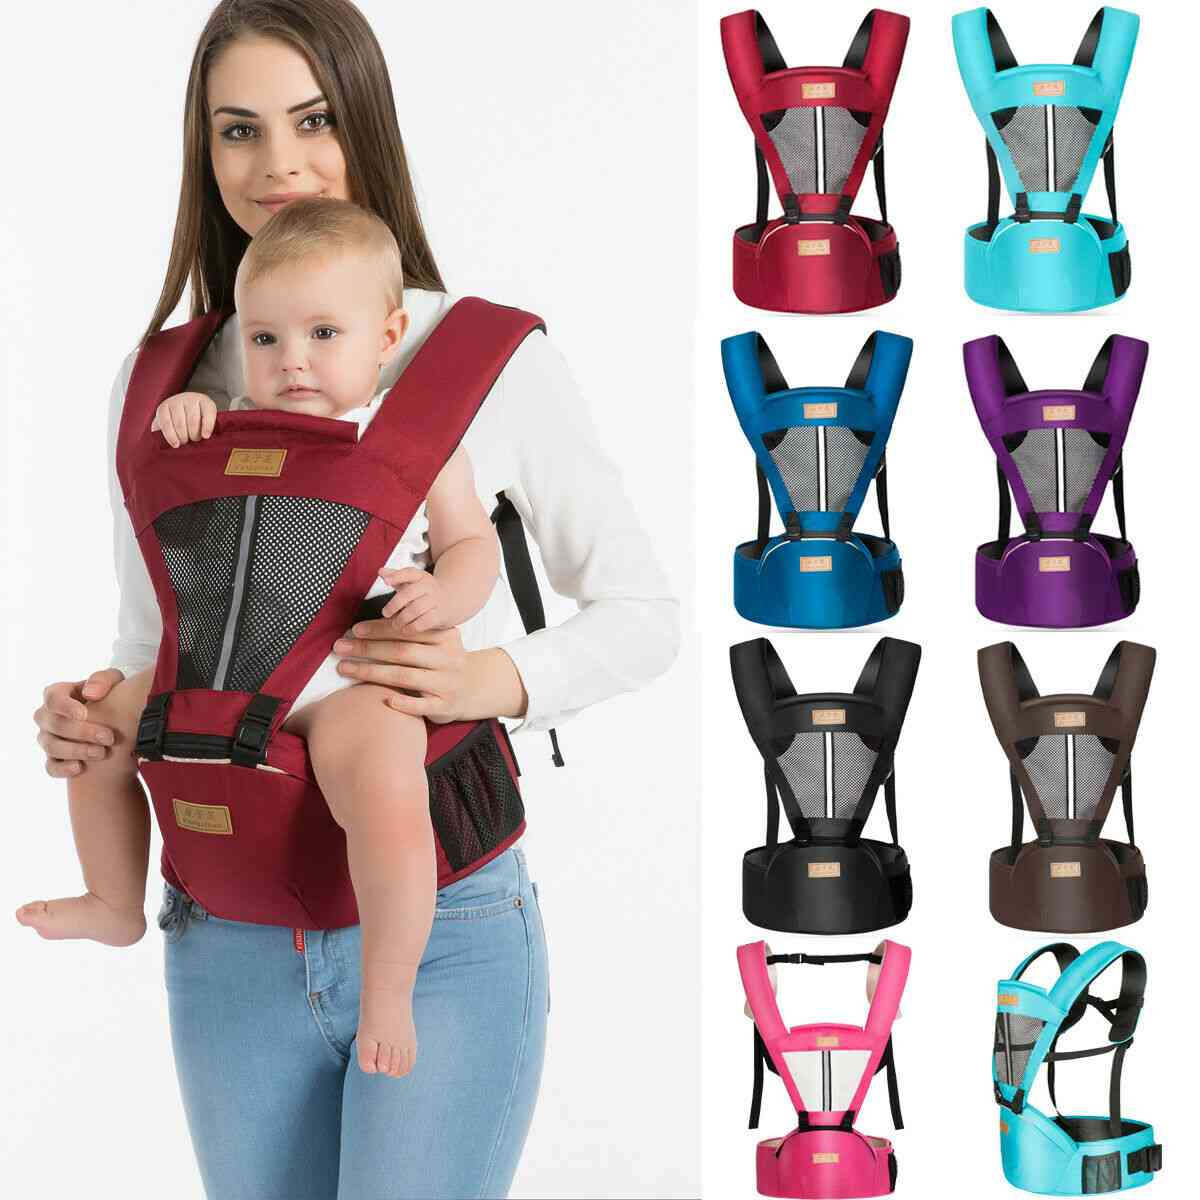 Newborn Baby Carrier Kangaroo, Soft Breathable Adjustable Sling Wrap Portable Hipseat